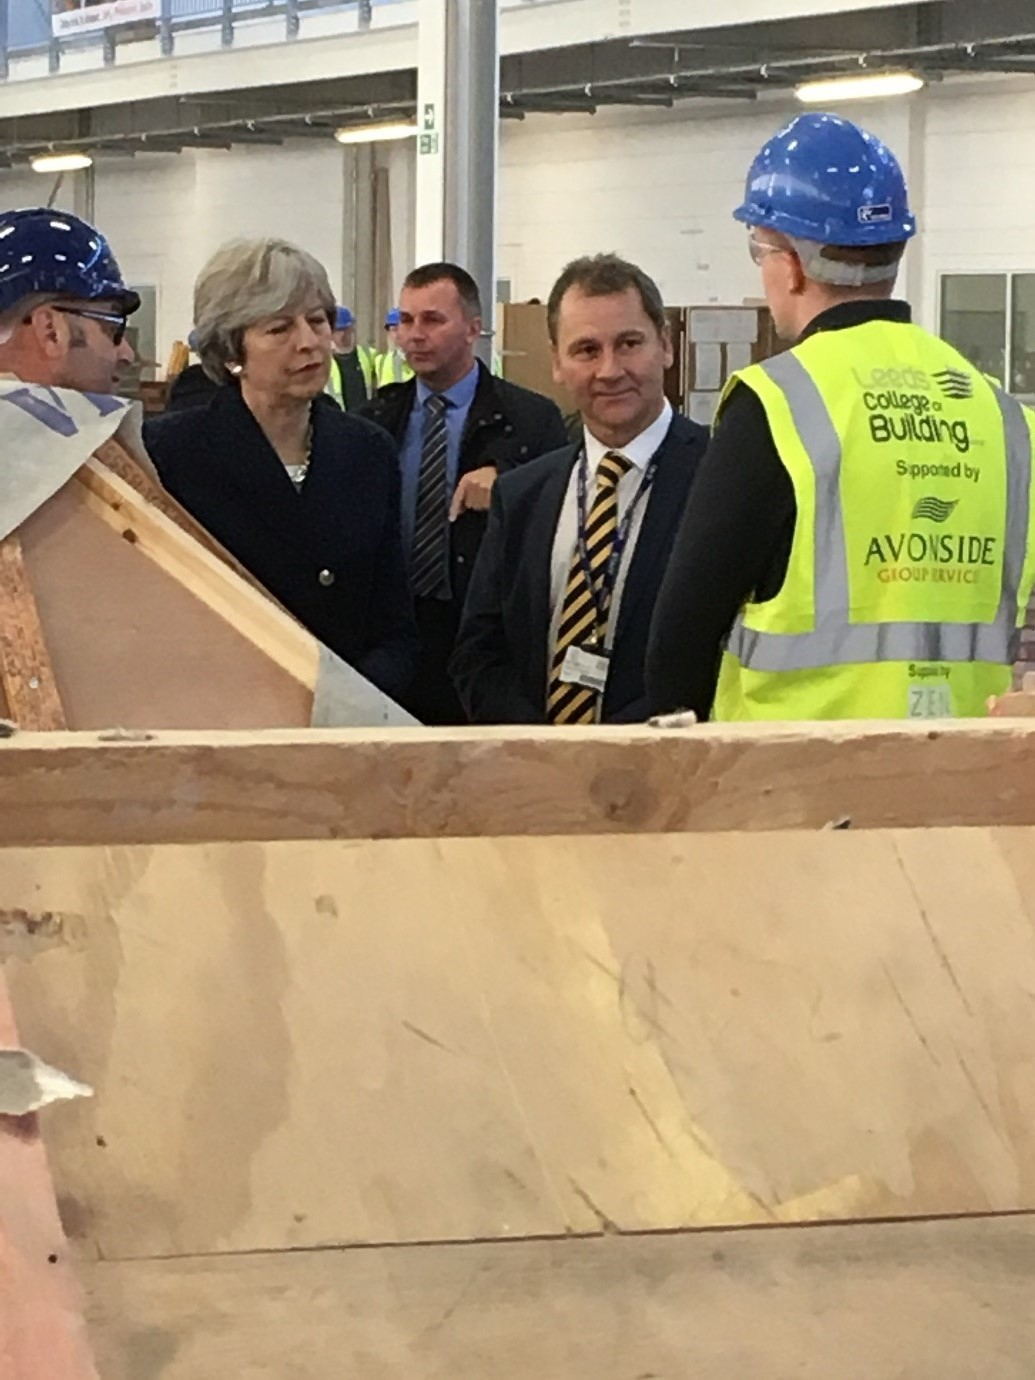 Prime minister Theresa May visits Leeds College of Building